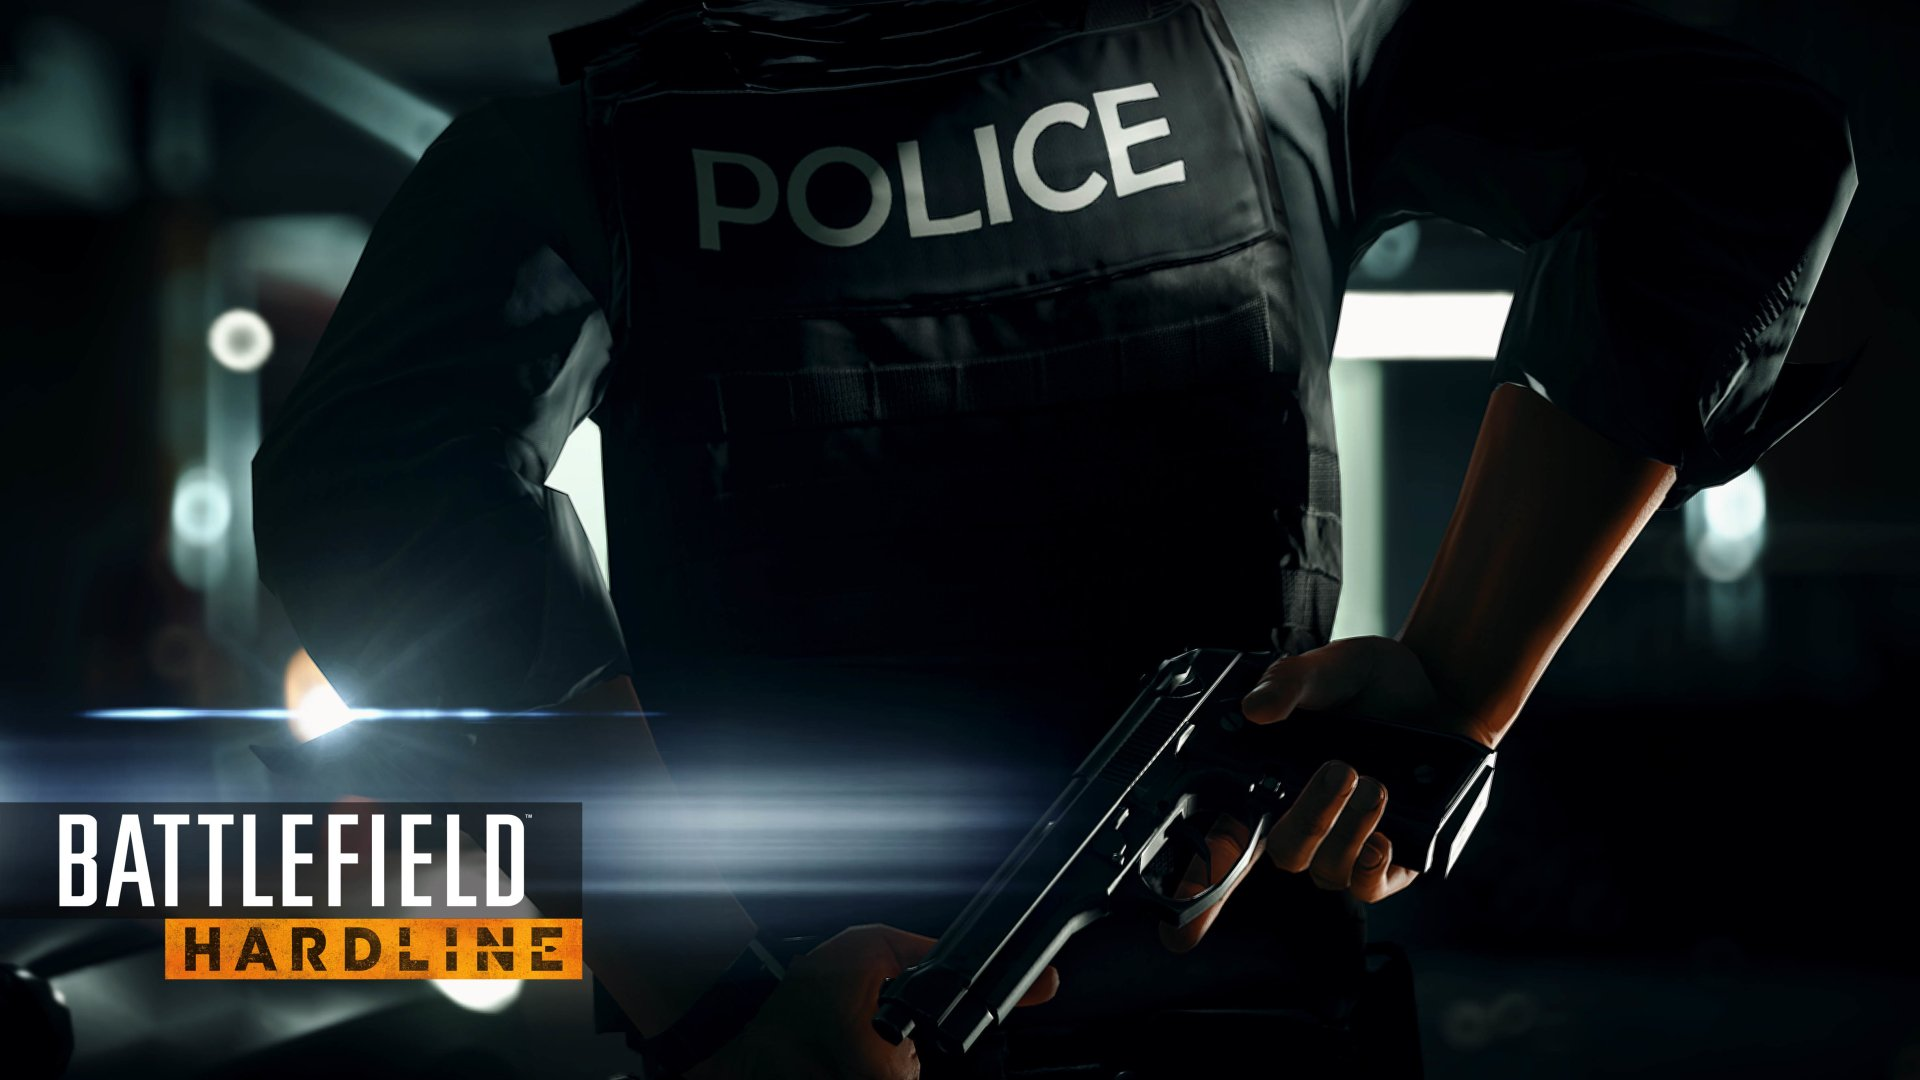 Video Game - Battlefield Hardline  Battlefield: Hardline Wallpaper